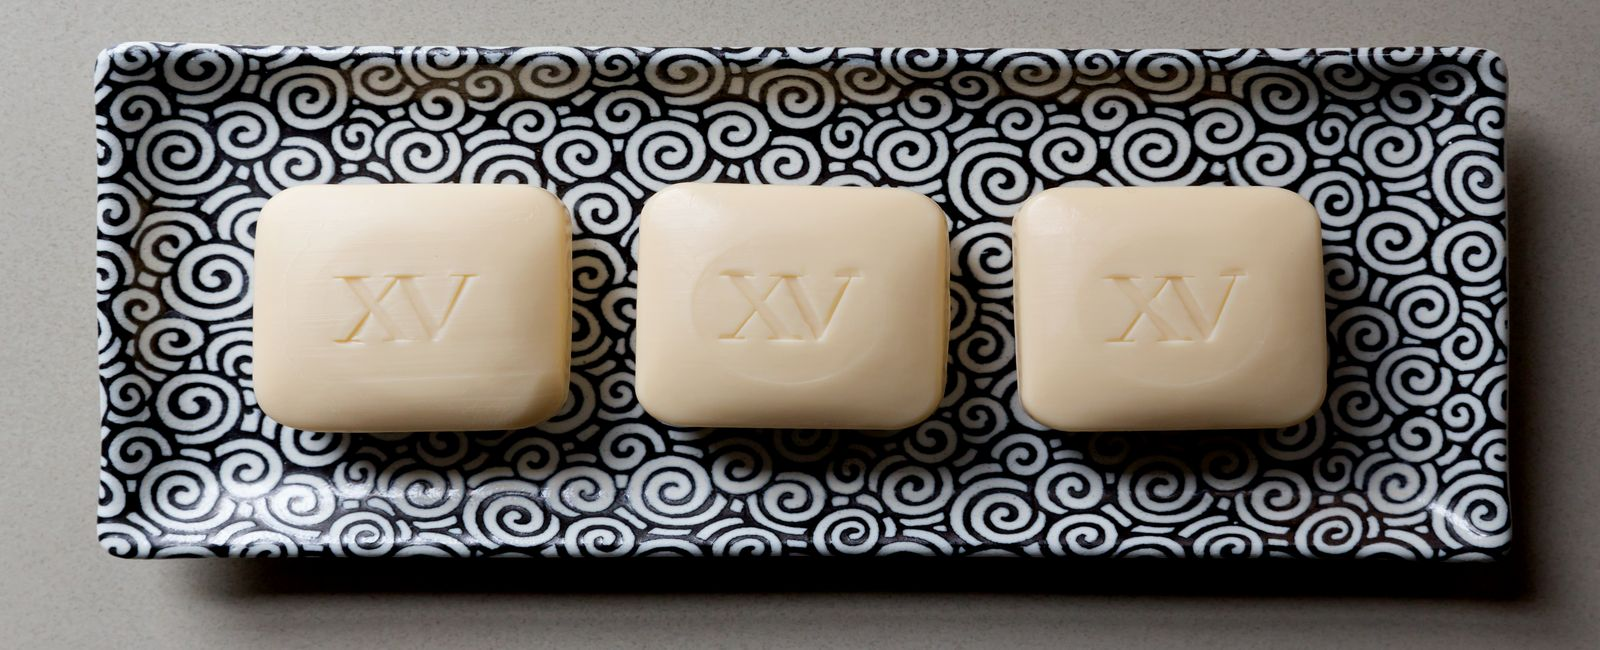 fifteen beacon branded soap bars.